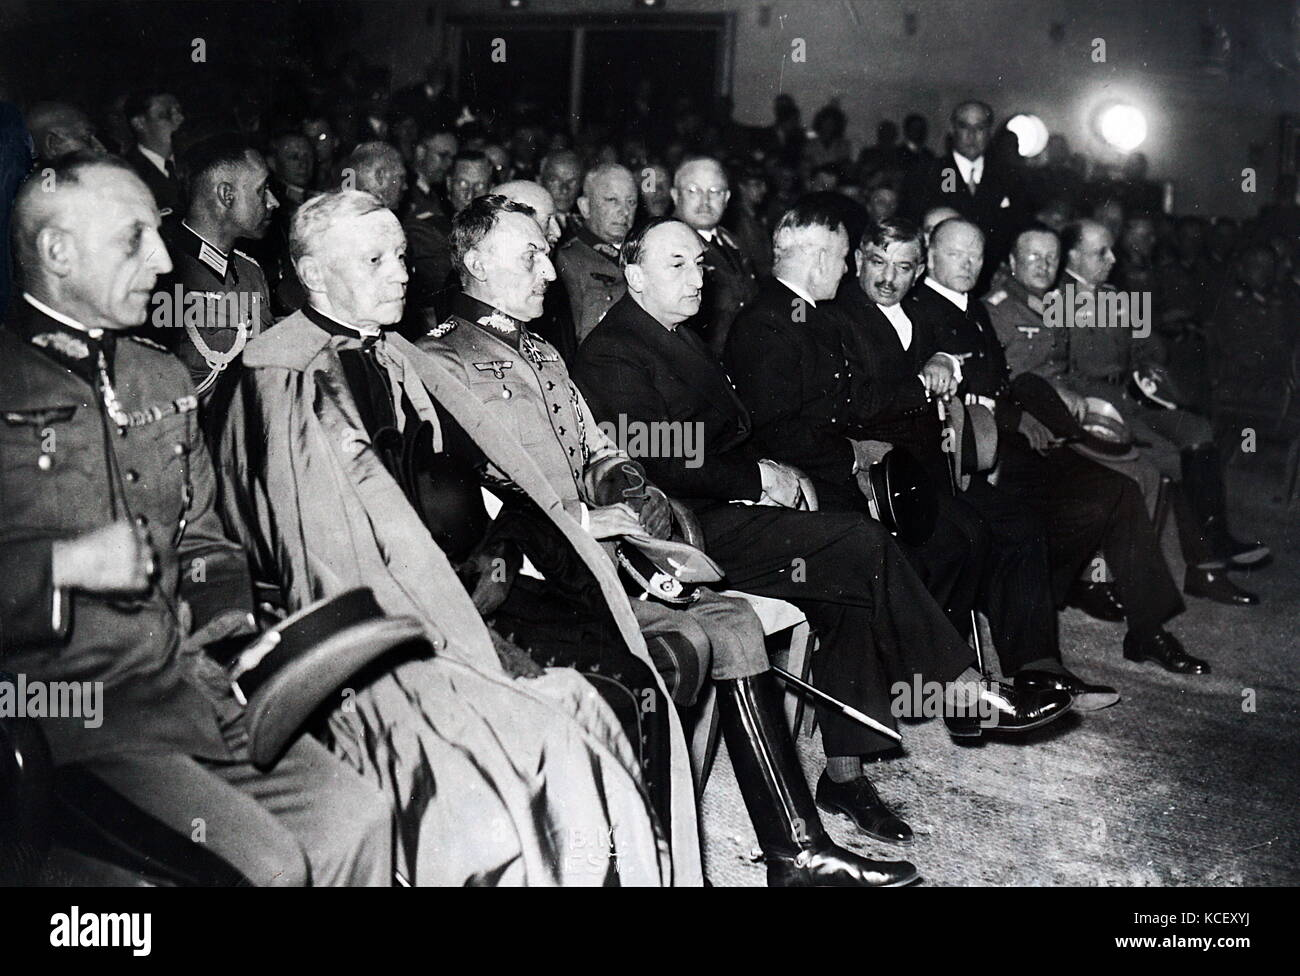 Photograph of Nazi leaders gathered with French leaders for an evening event in Paris. Emmanuel Célestin Suhard, - Stock Image